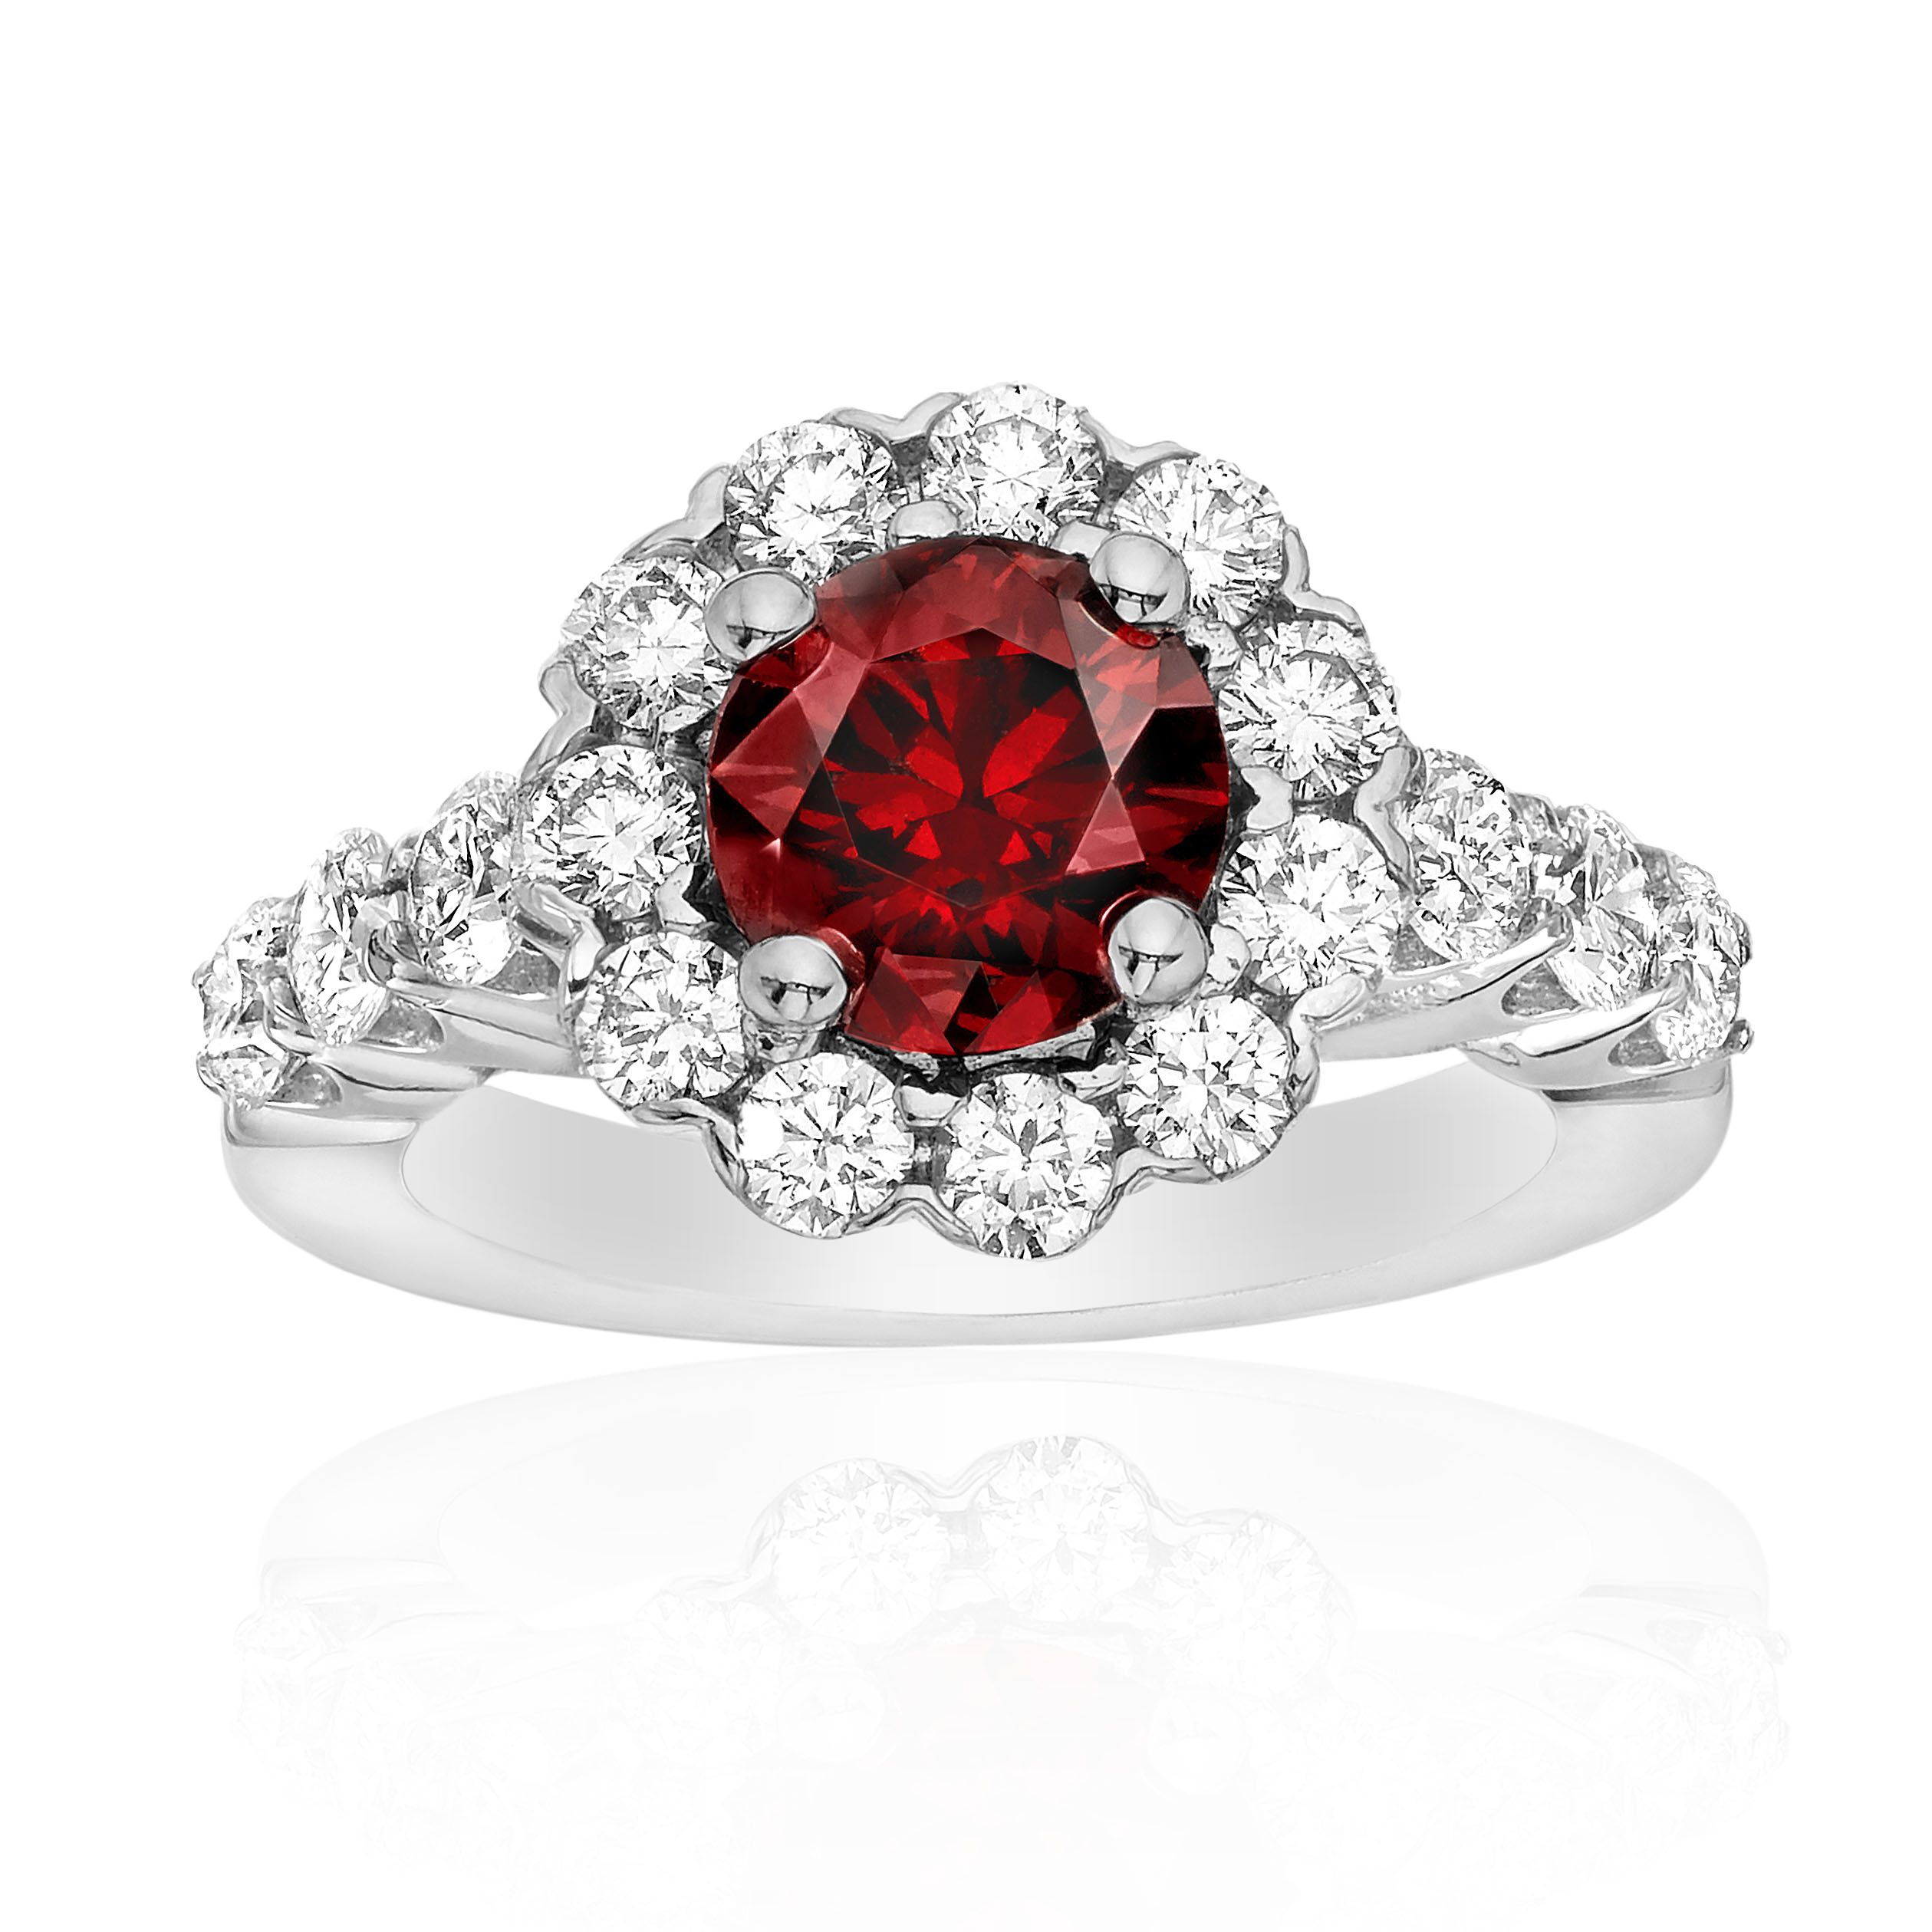 garden to spotlight rings ready buy hatton diamond today jewellery red london idjc